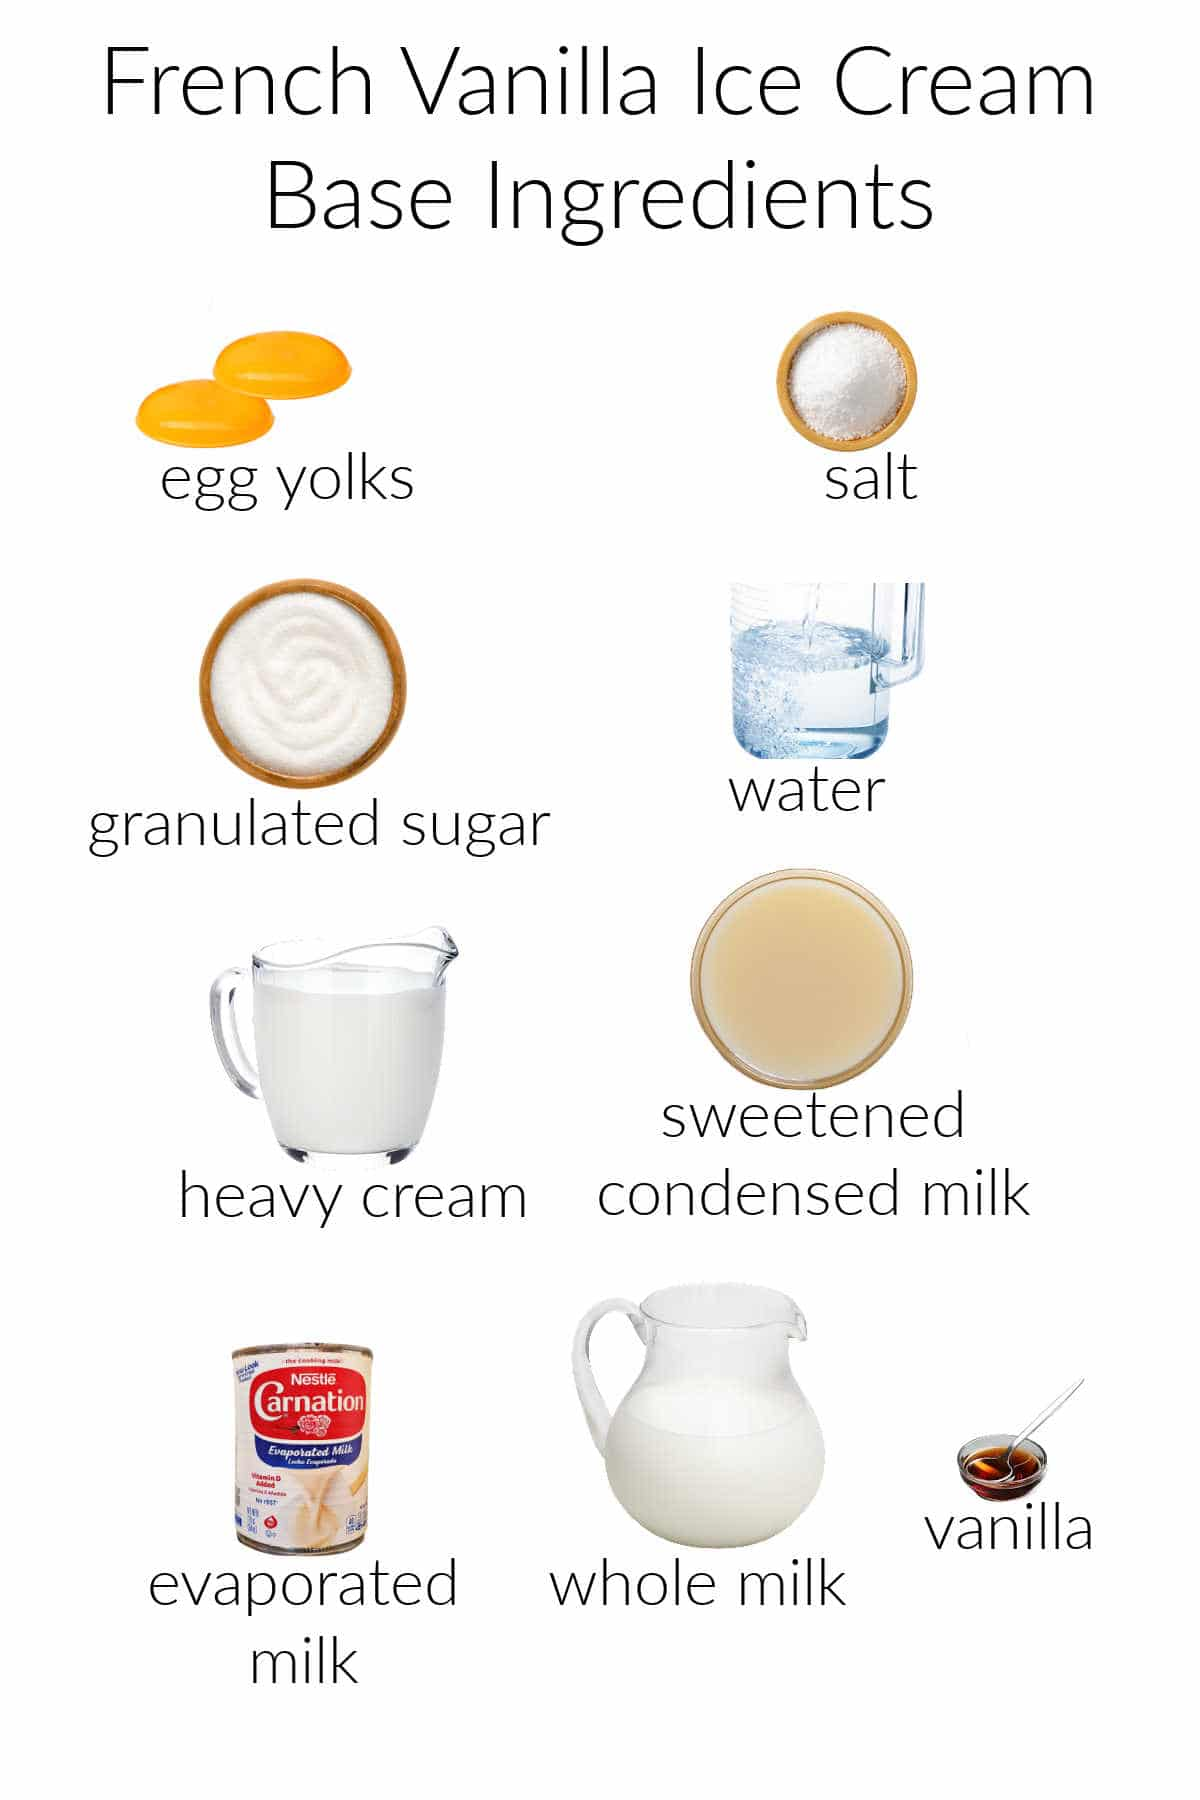 A collage of the ingredients for making vanilla ice cream base: egg yolks, salt, sugar, water, heavy cream, sweetened condensed milk, evaporated milk, whole milk, and vanilla.